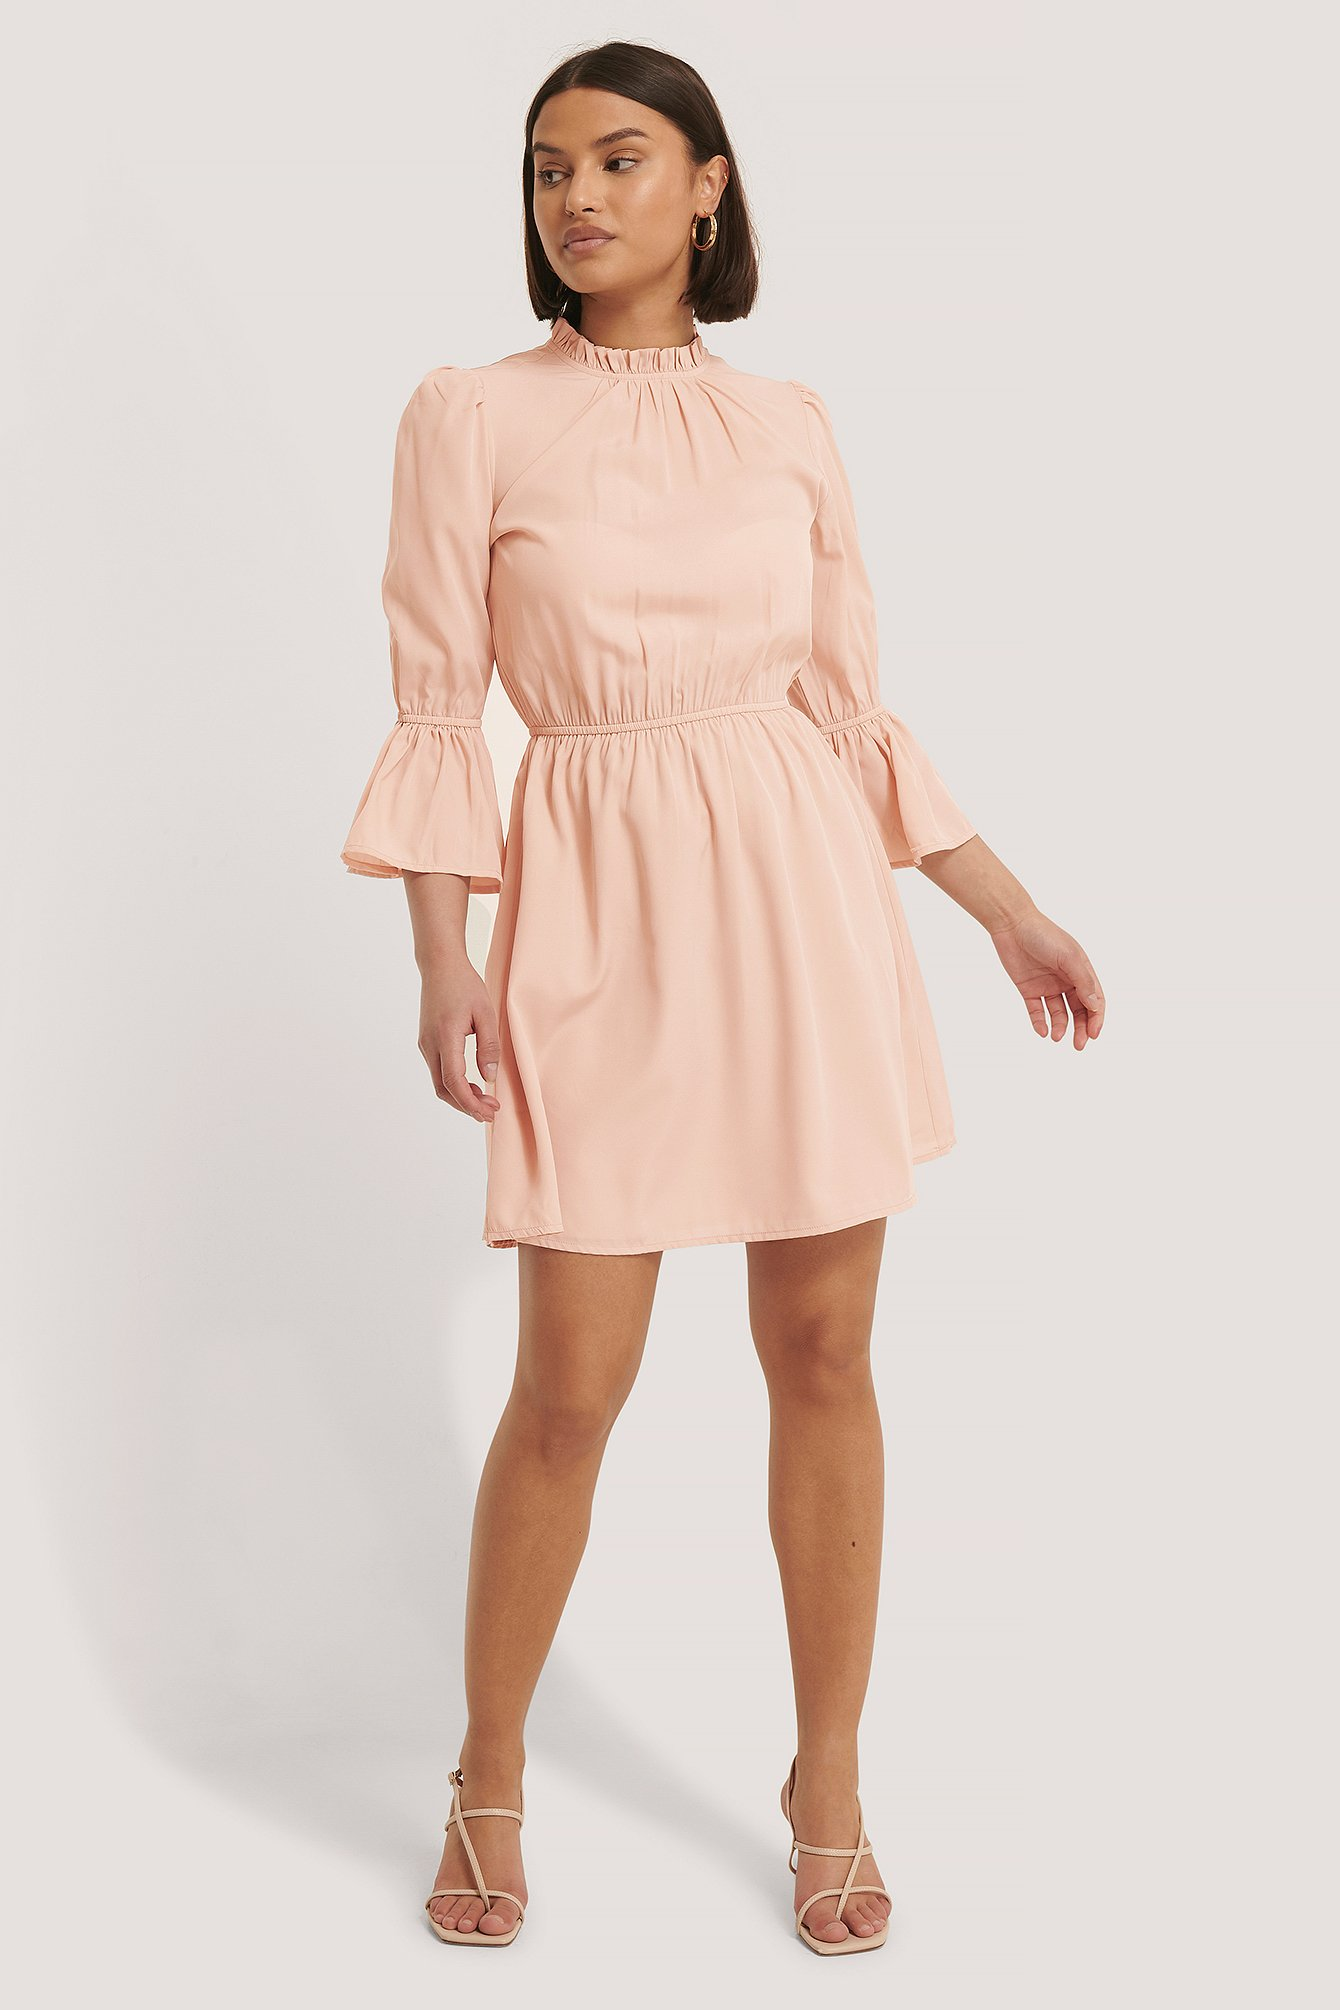 Dusty Pink High Neck Flare Mini Dress